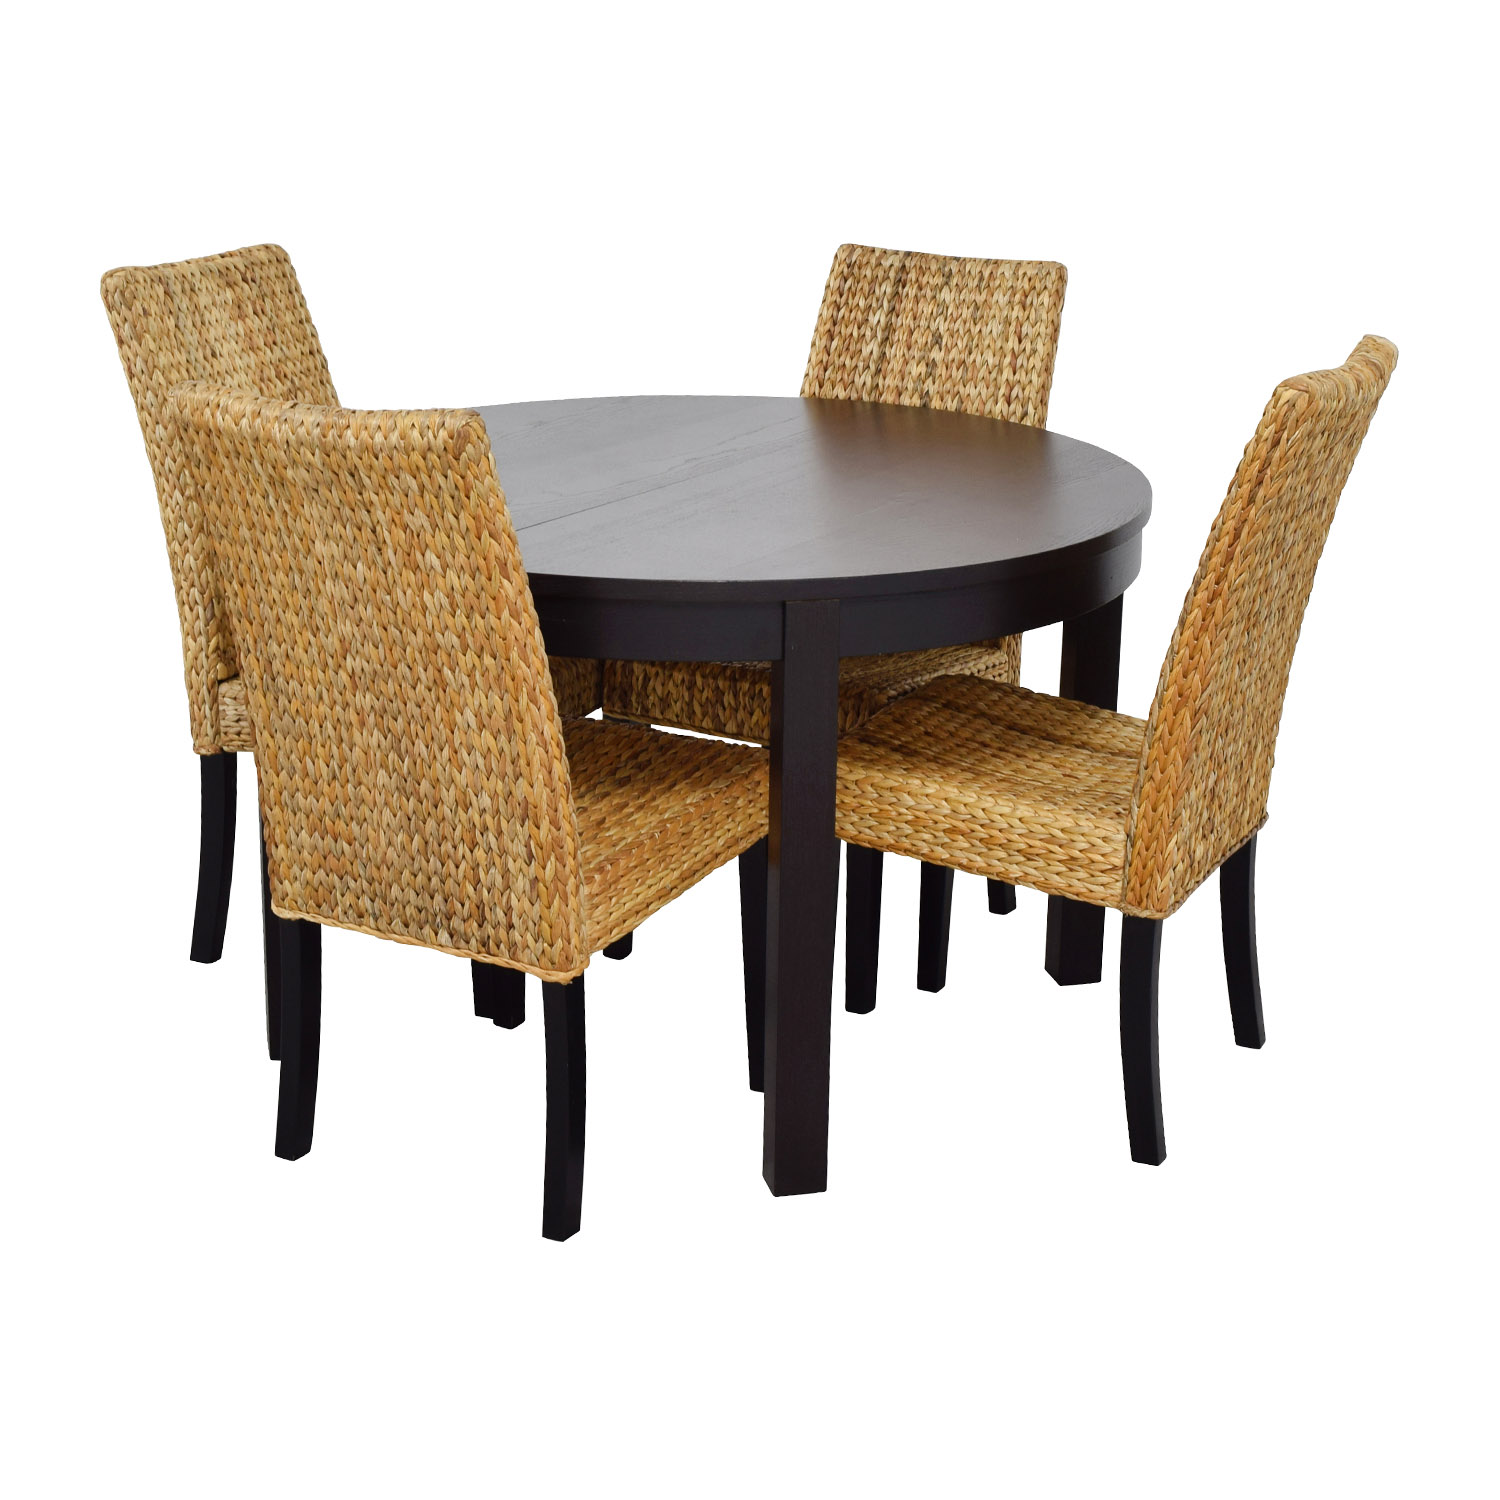 66 Off Round Black Dining Table Set With Four Chairs Tables